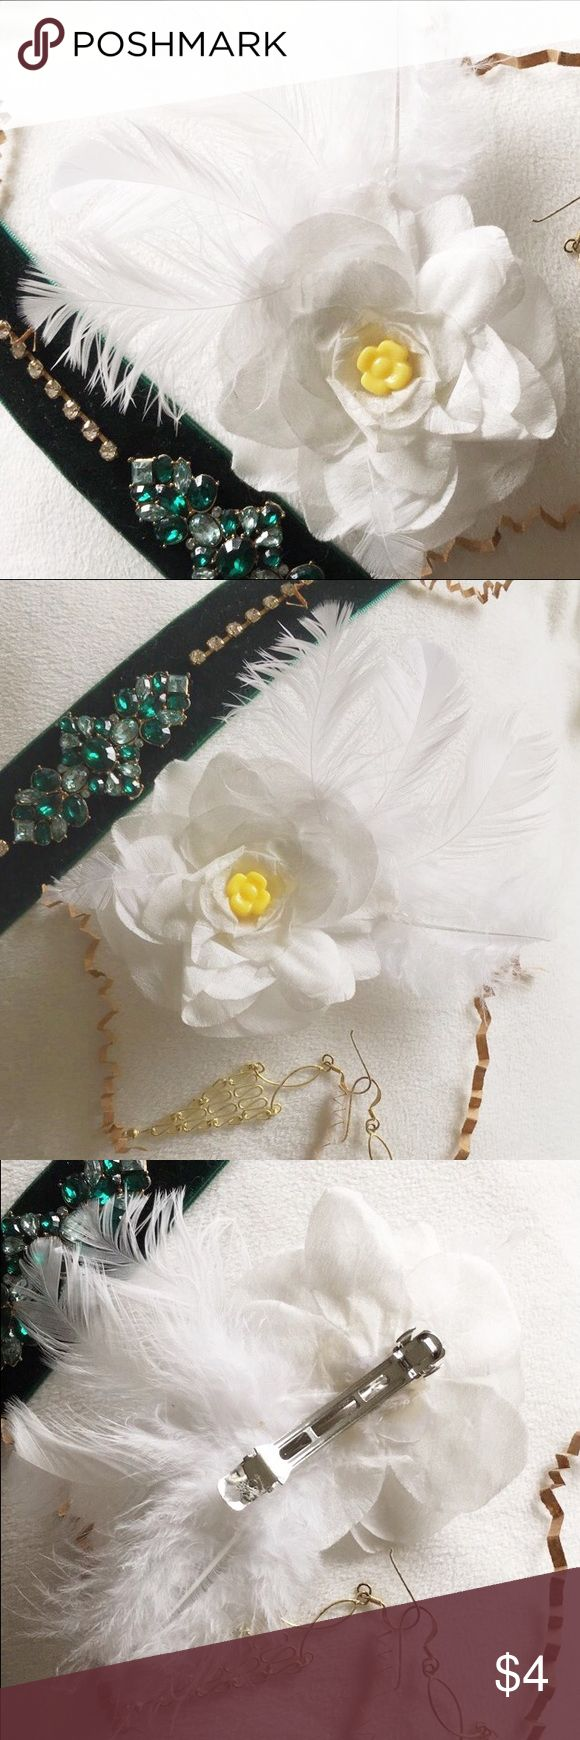 Feather hair clip Homemade hair clip. There are some white feathers with a white flower on top and a yellow bead was glued in the center of the flower. This hair clip gives off a vintage vibe and would look great with a white crop top and some jean shorts. Accessories Hair Accessories